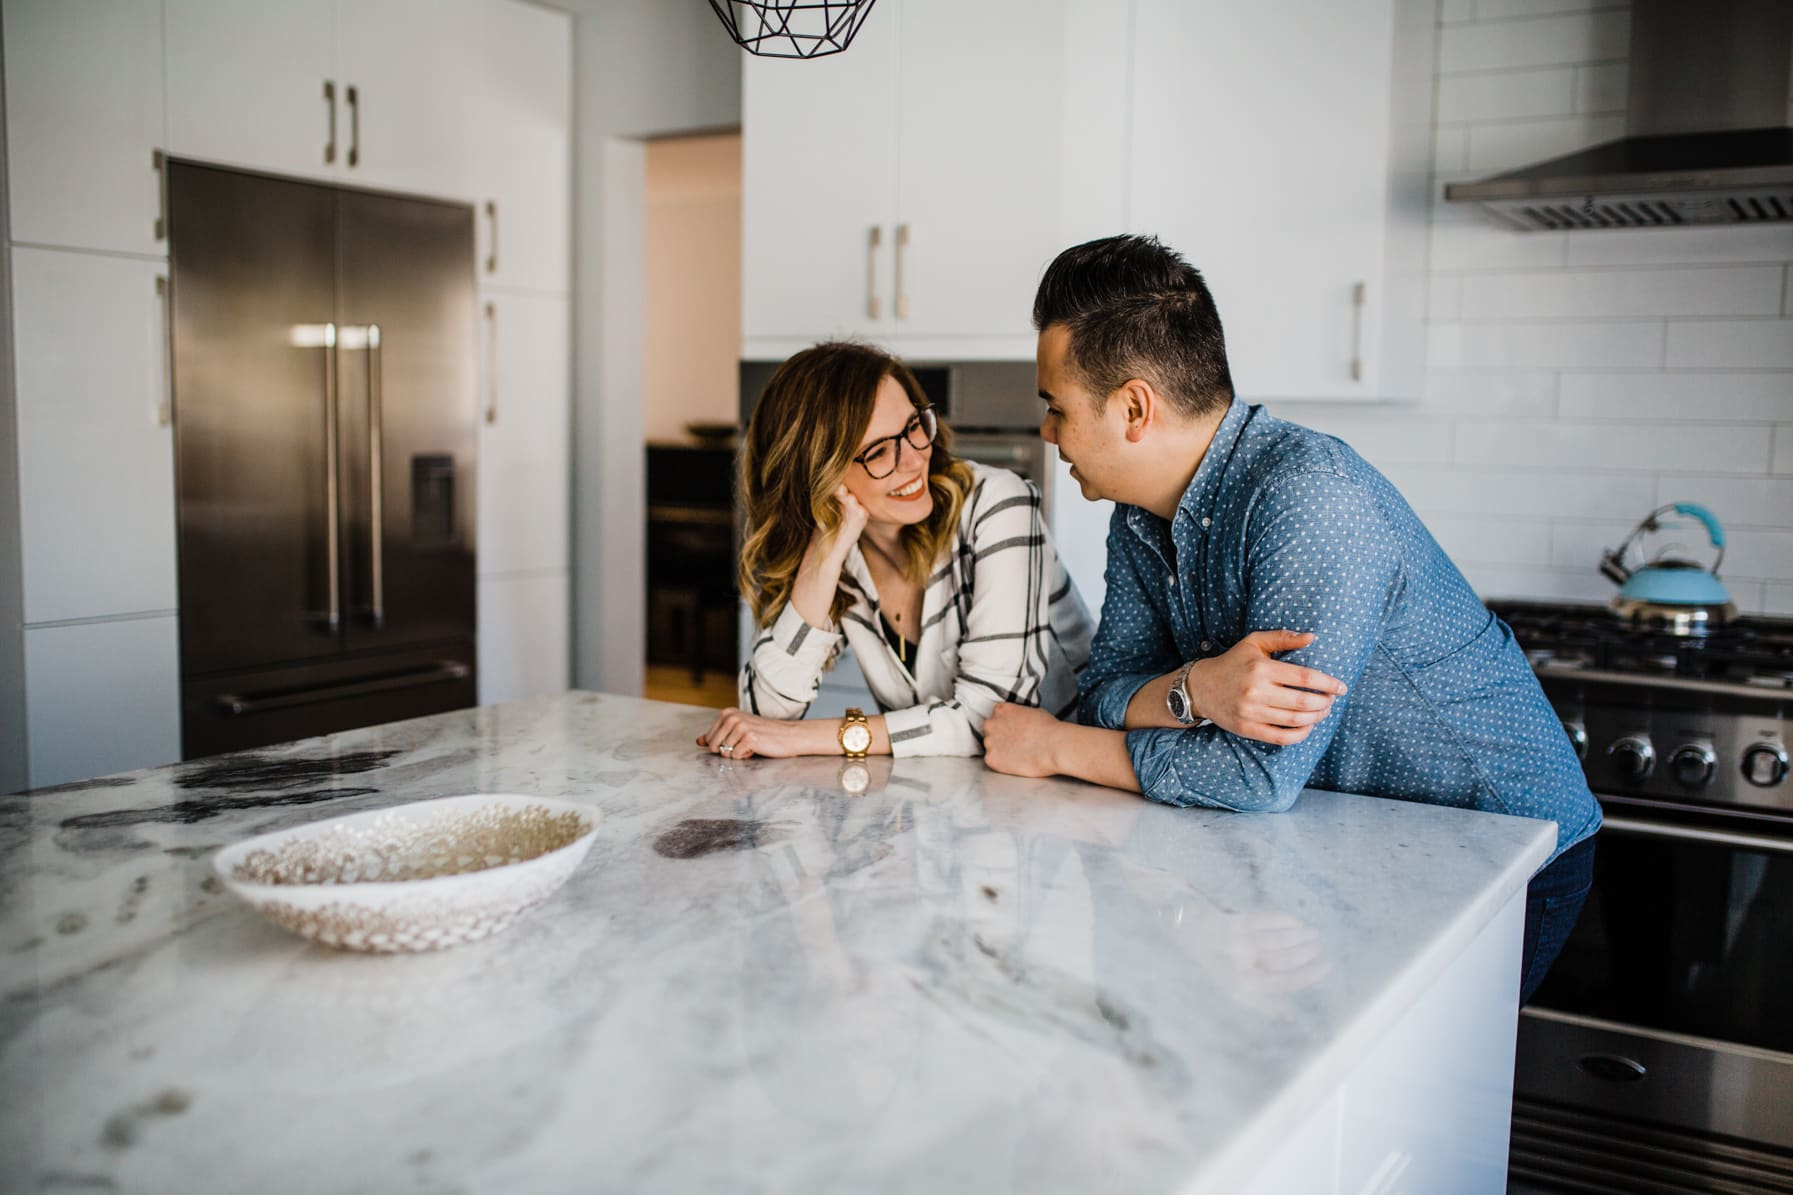 Couple hang out in kitchen - Cozy At-Home Photos Lifestyle